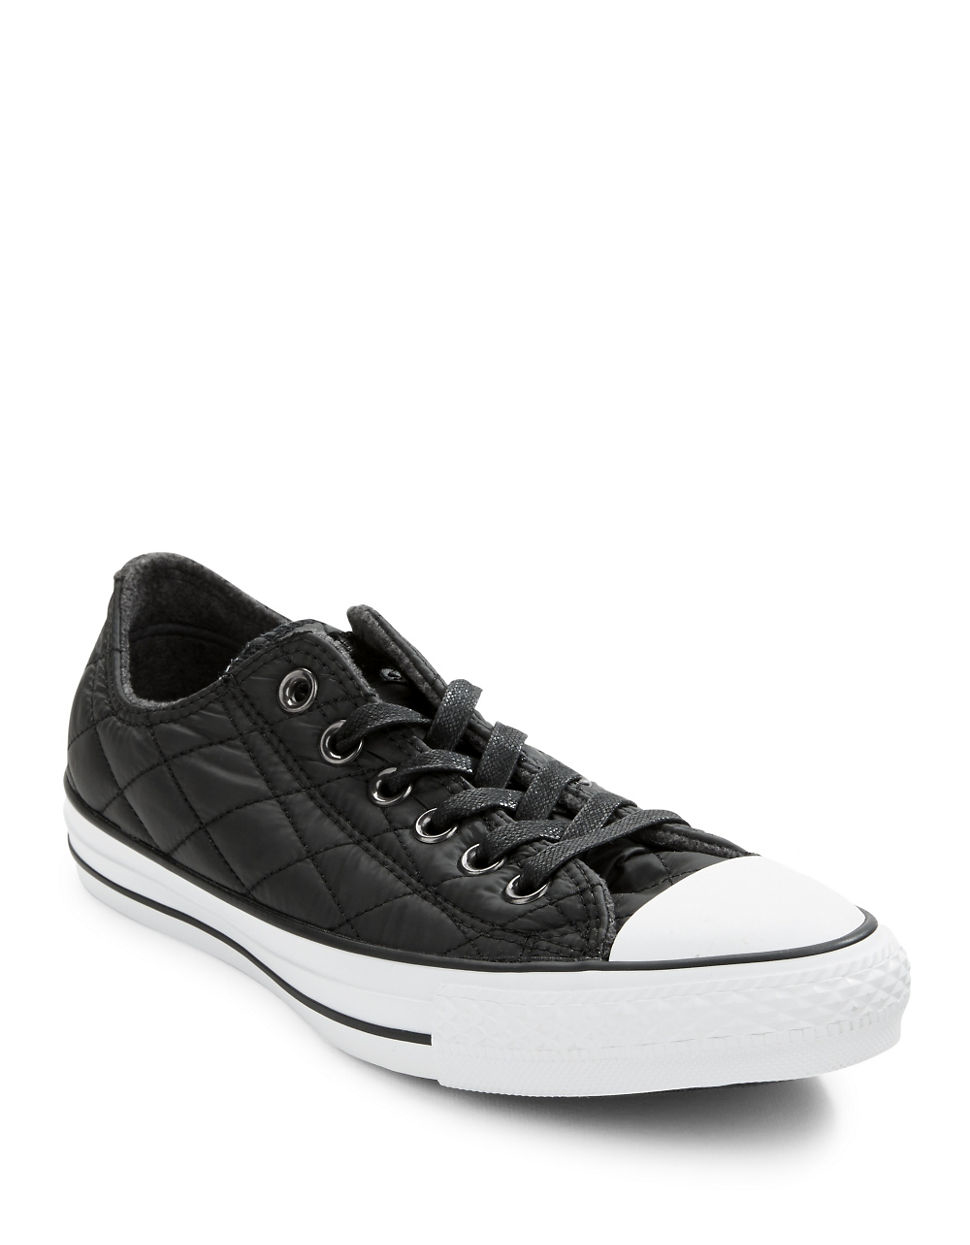 Converse Quilted Lace Up Sneakers In Black Lyst